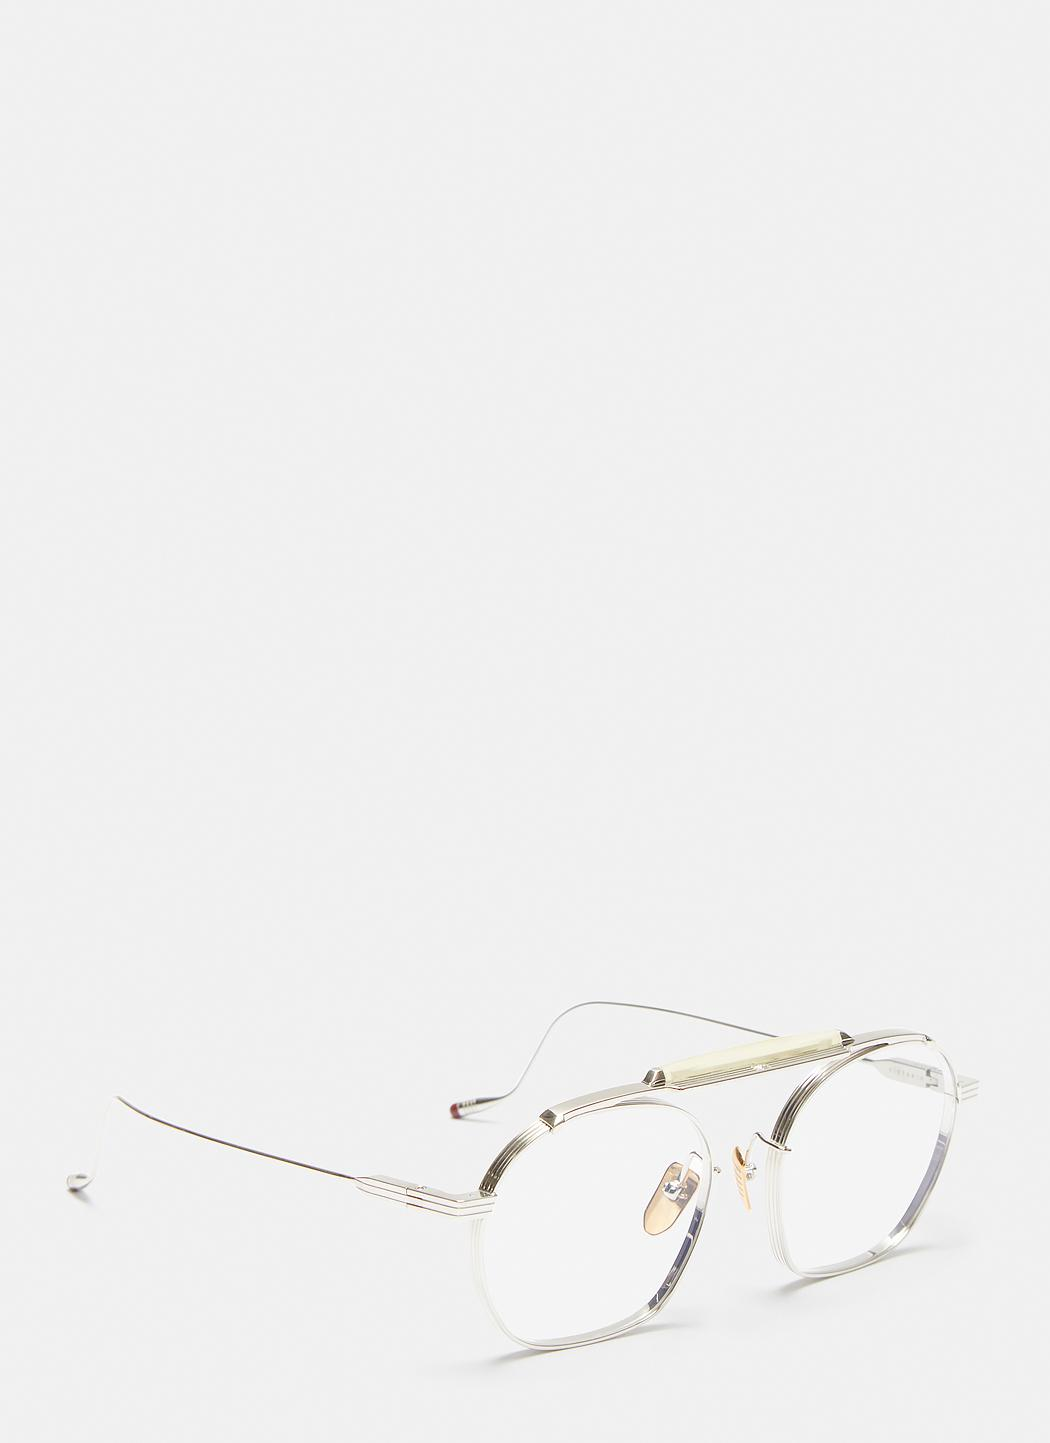 lyst jacques marie mage victorio round frame sunglasses in silver Ray Ban Rb4068 view fullscreen